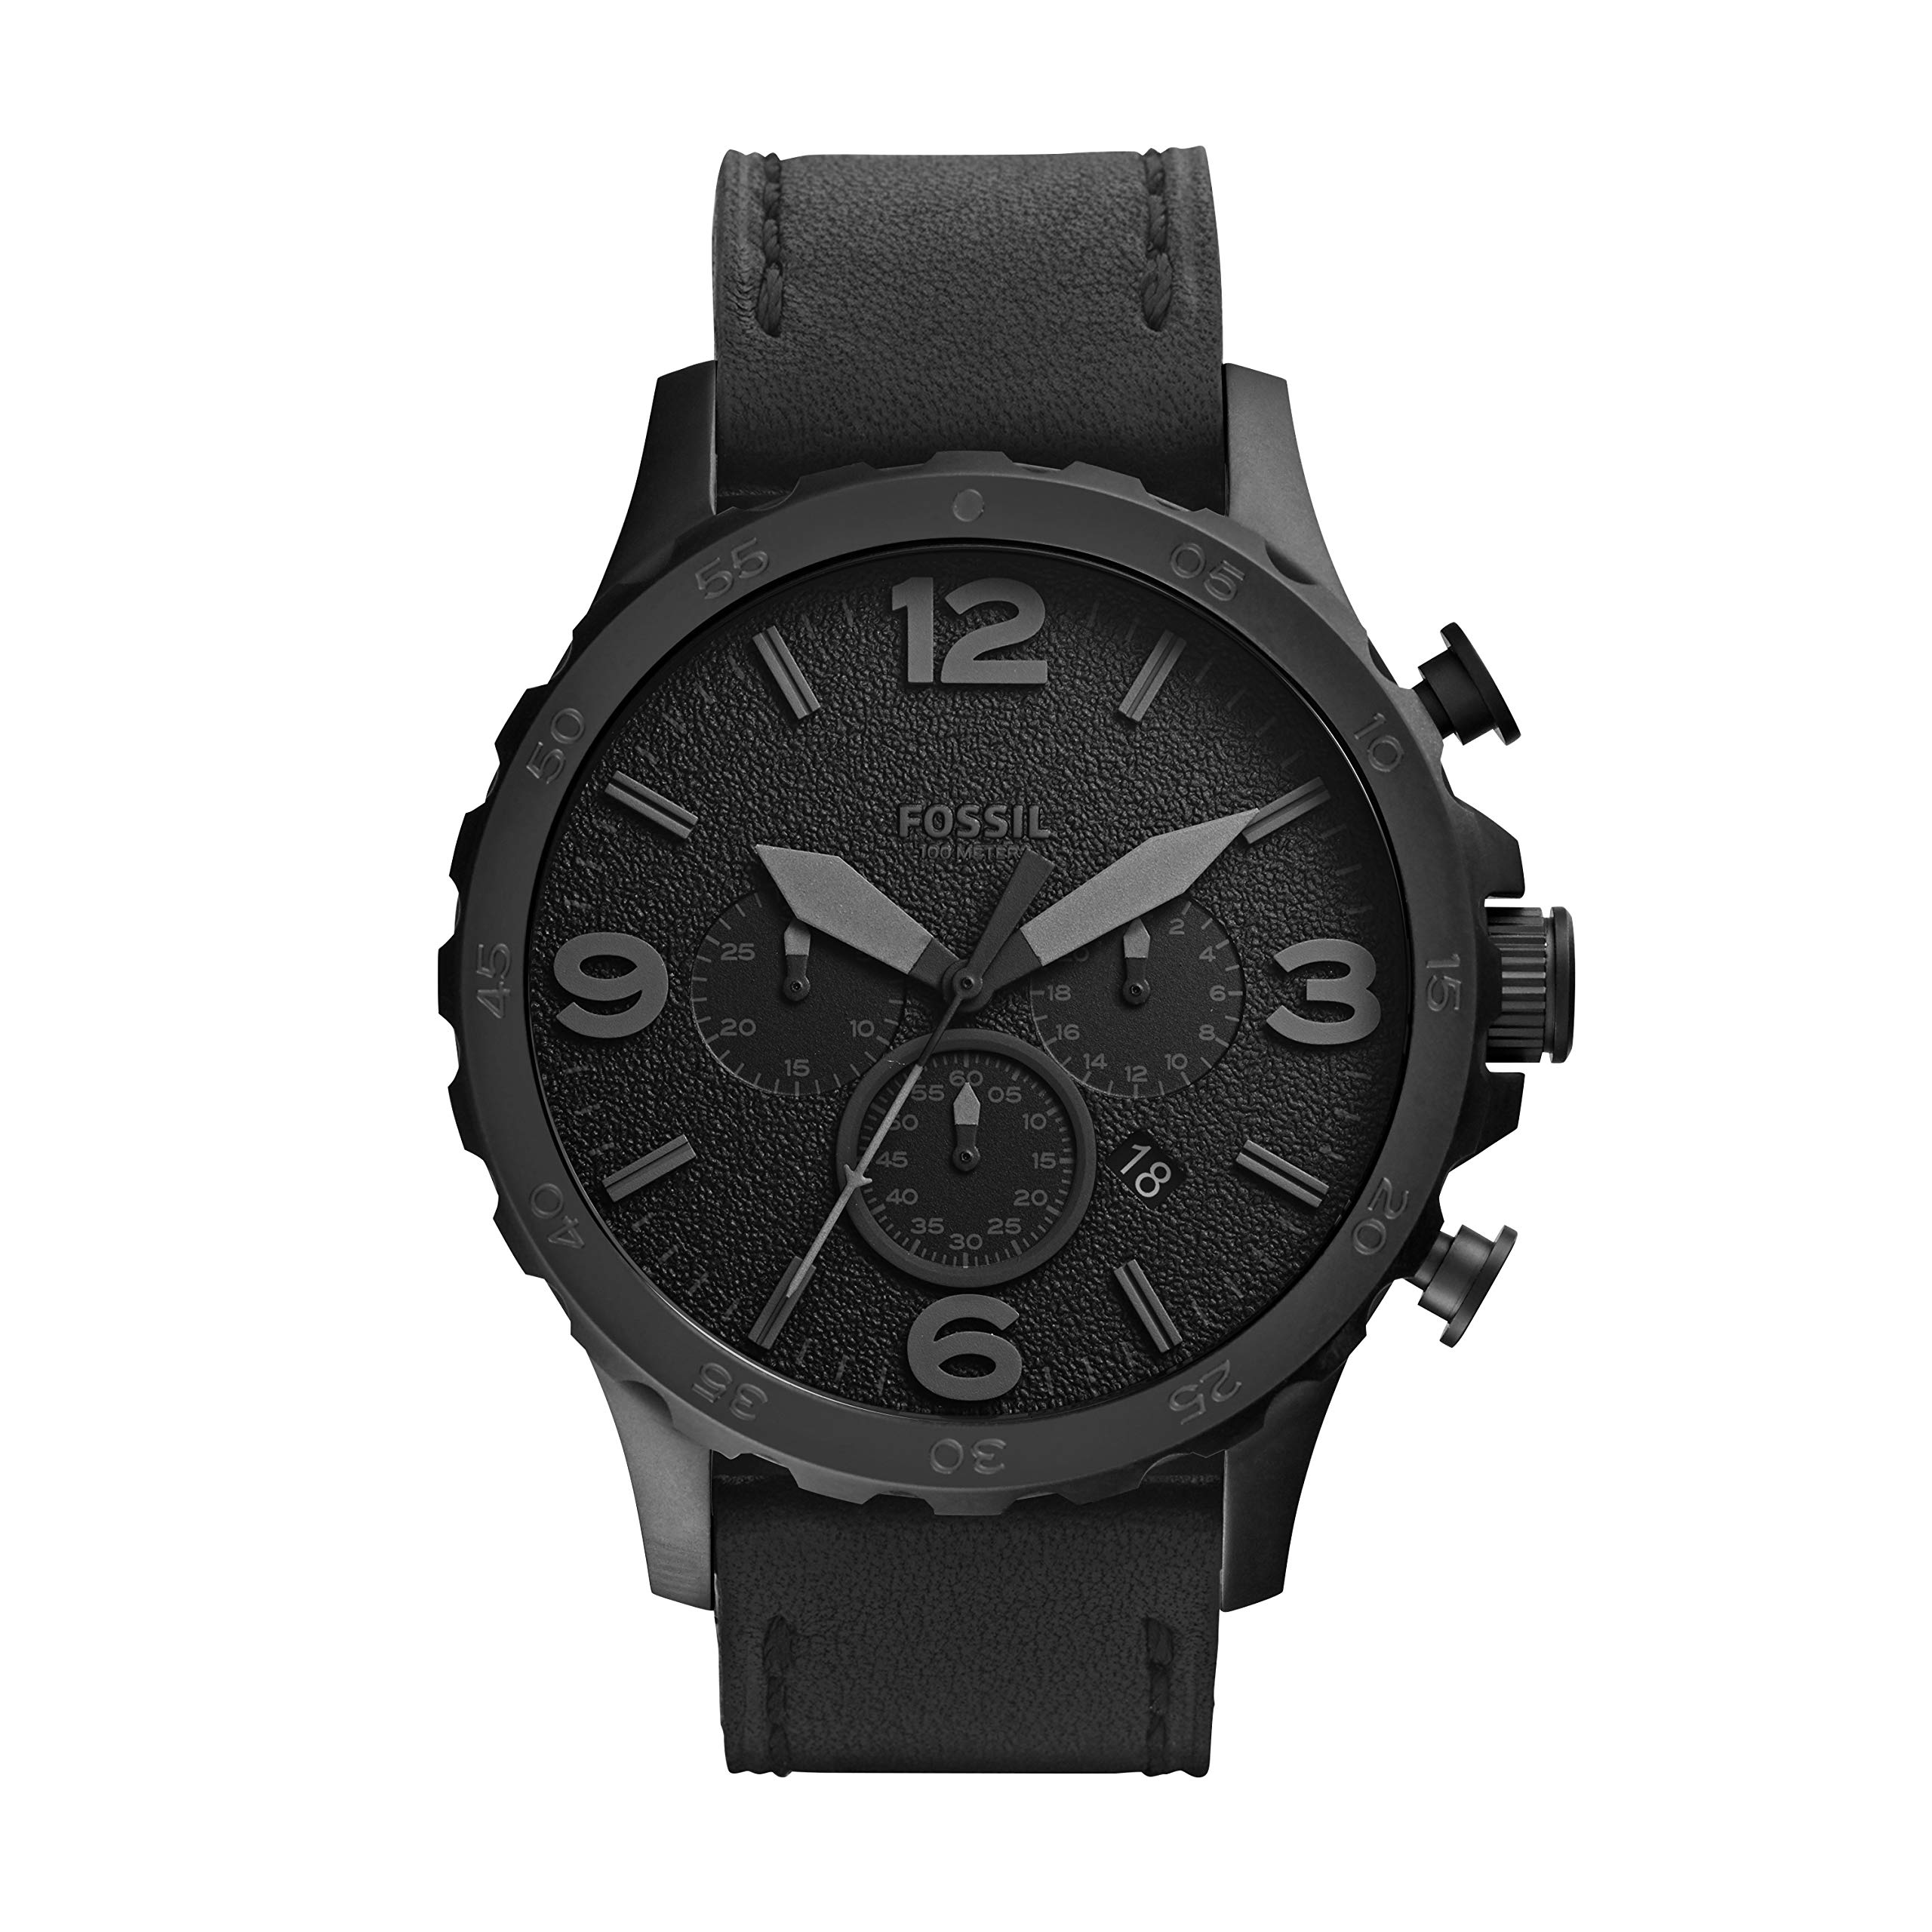 Fossil Men's Nate Quartz Stainless Steel and Leather Chronograph Watch, Color: Black (Model: JR1354) by Fossil